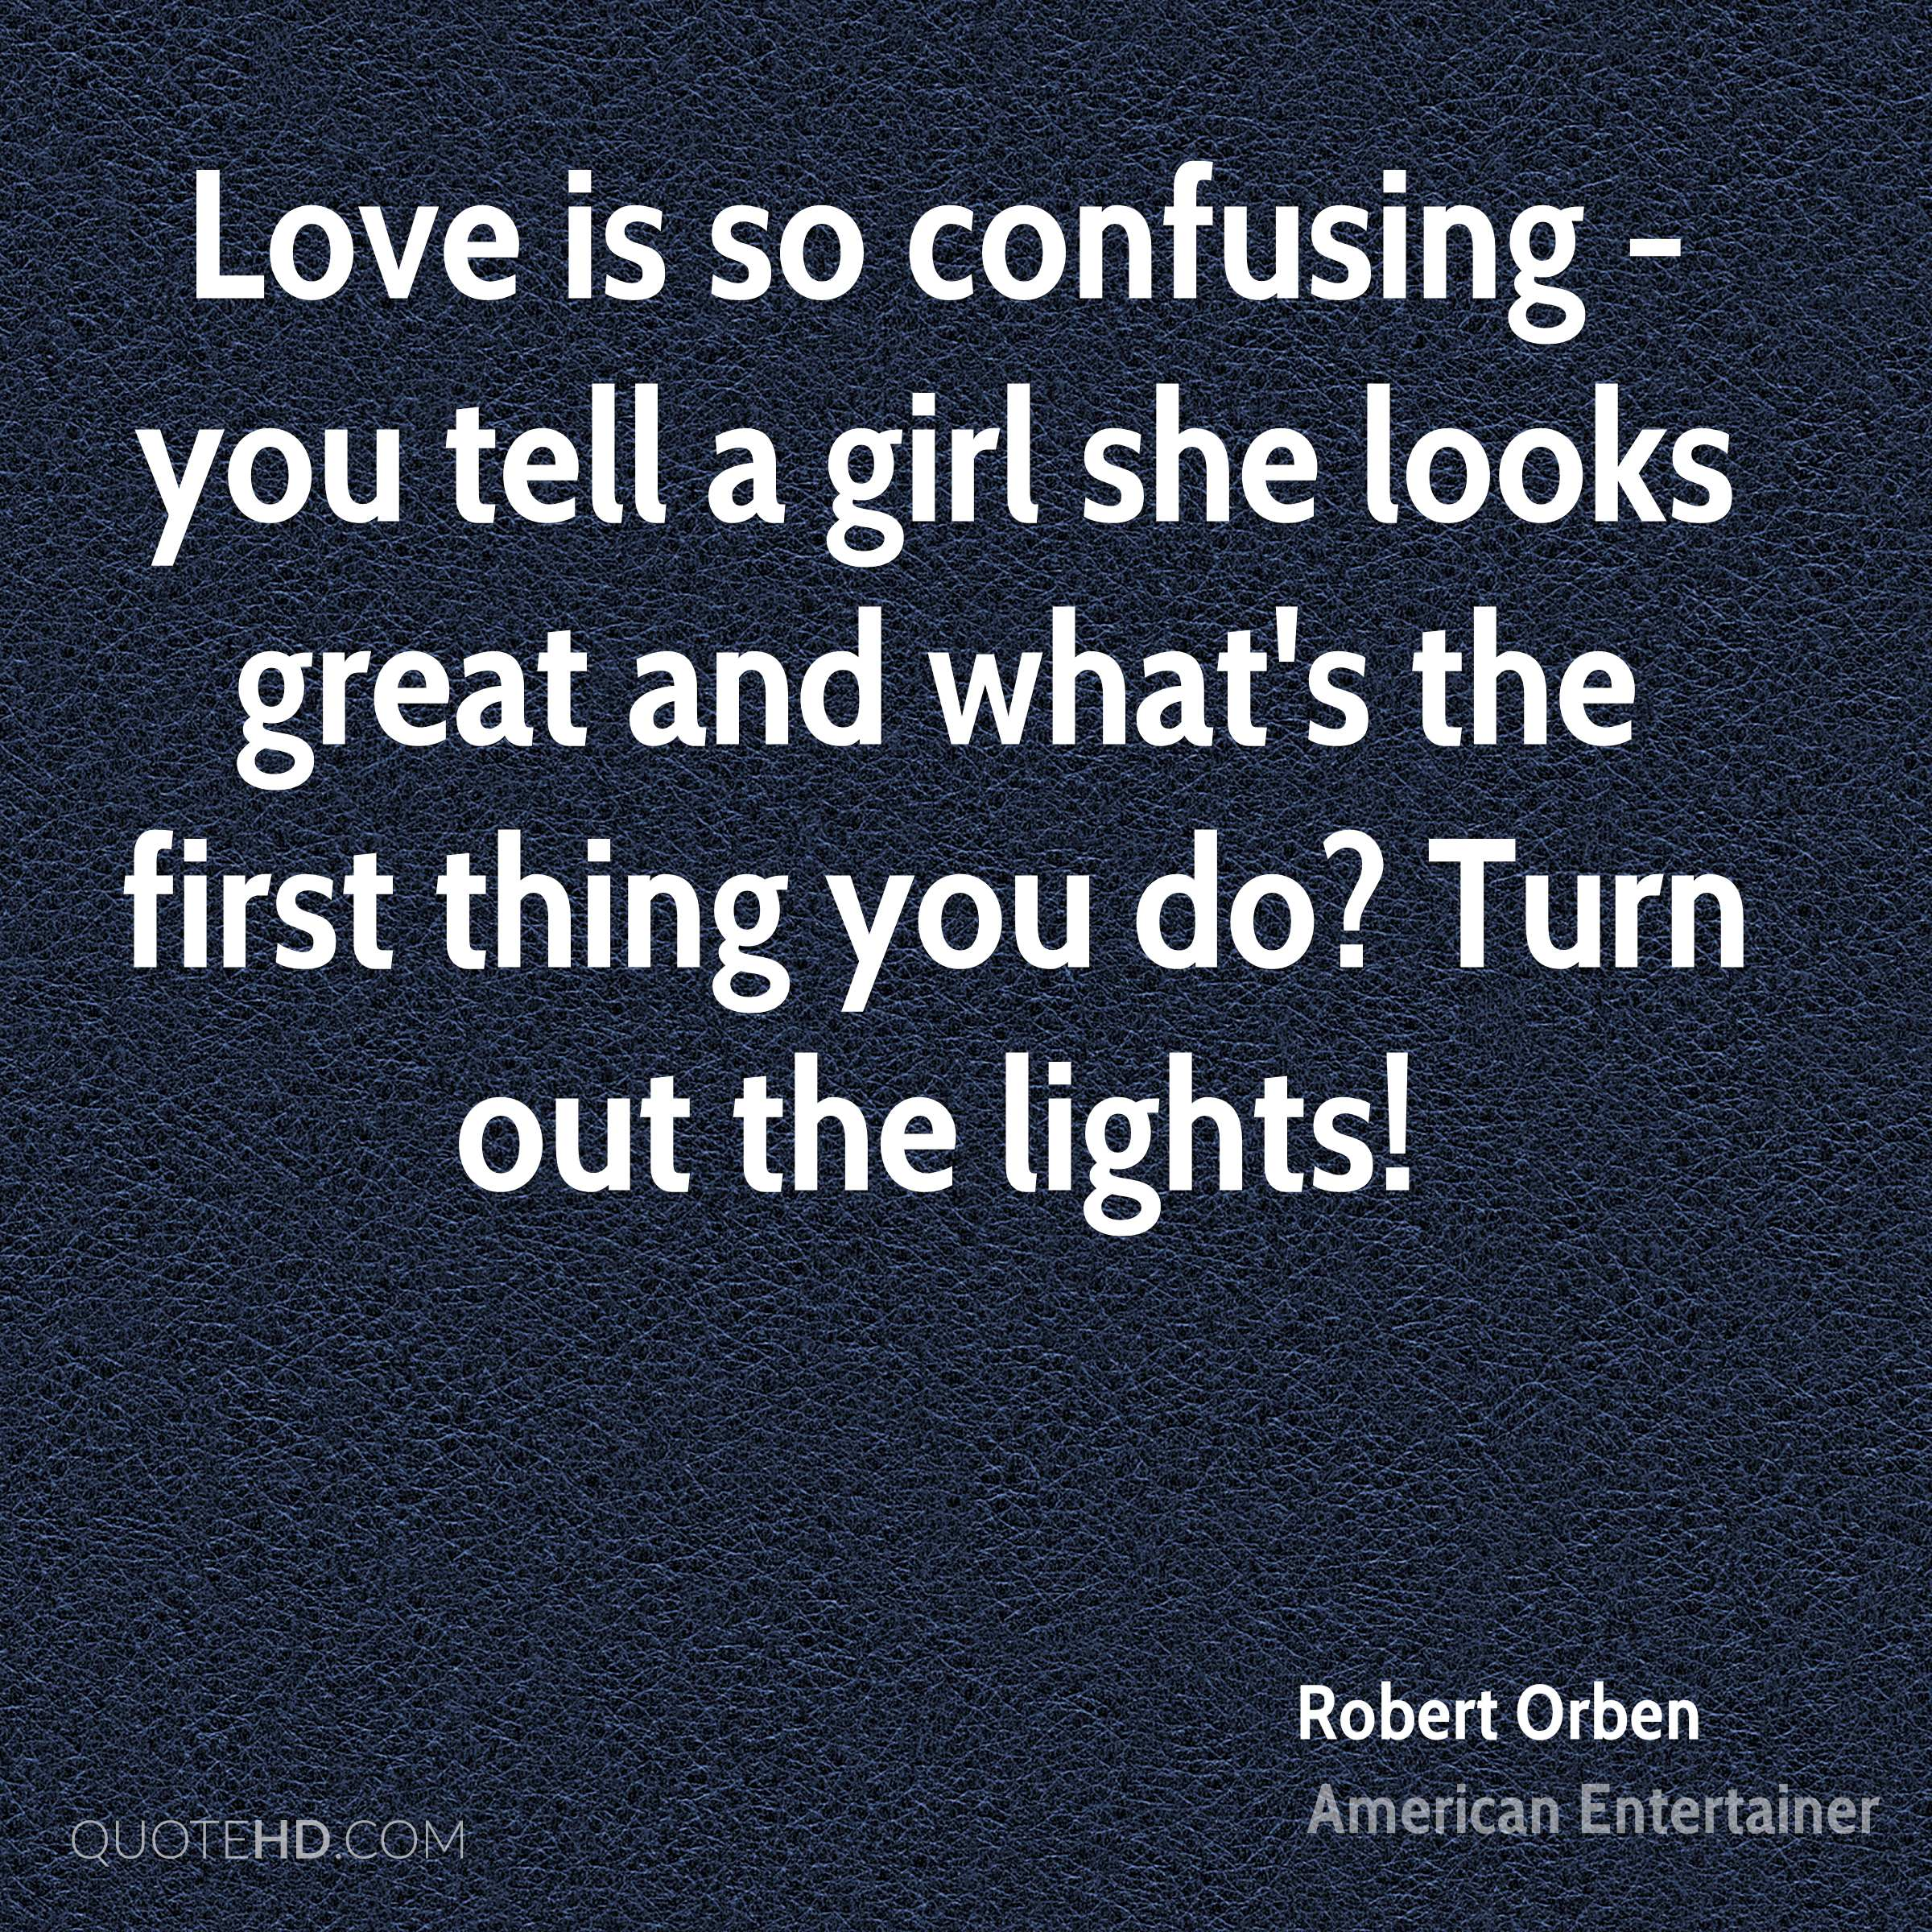 Love is so confusing - you tell a girl she looks great and what's the first thing you do? Turn out the lights!